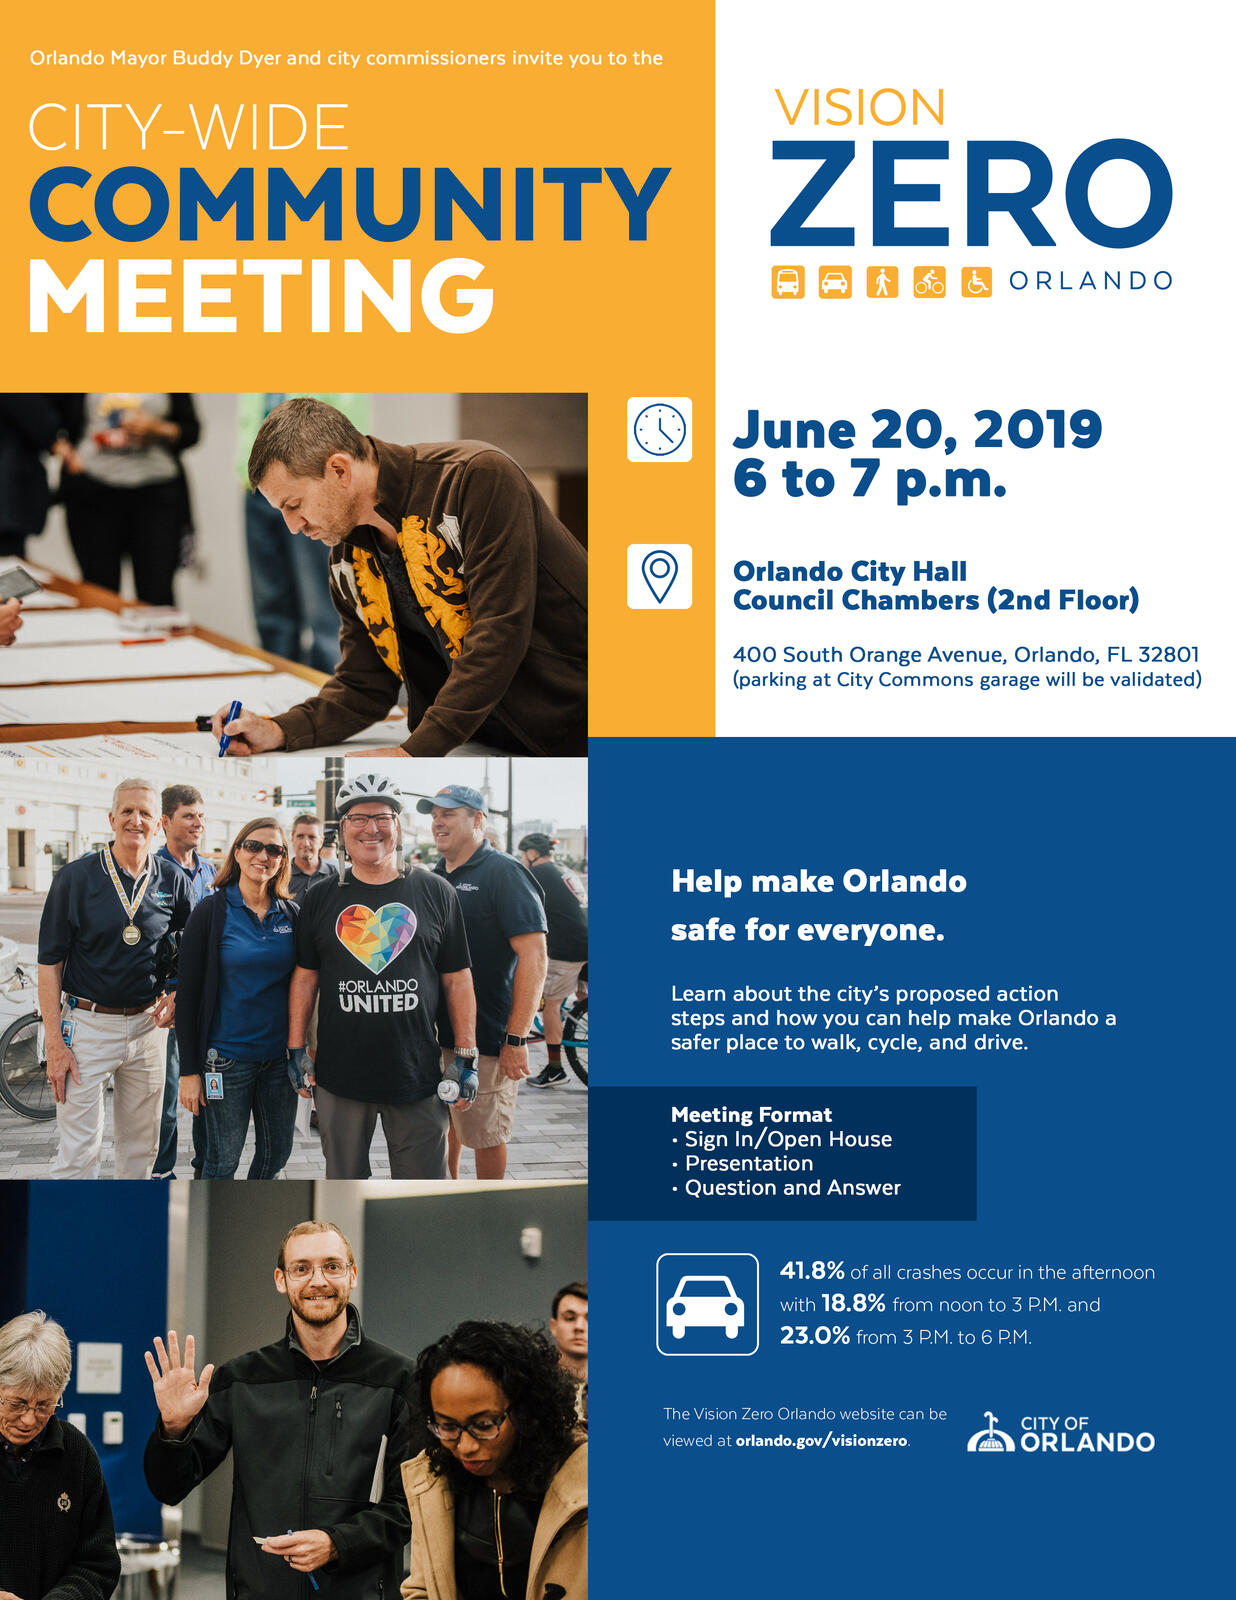 Vision Zero Action Plan Meeting - 6/20 (City of Orlando